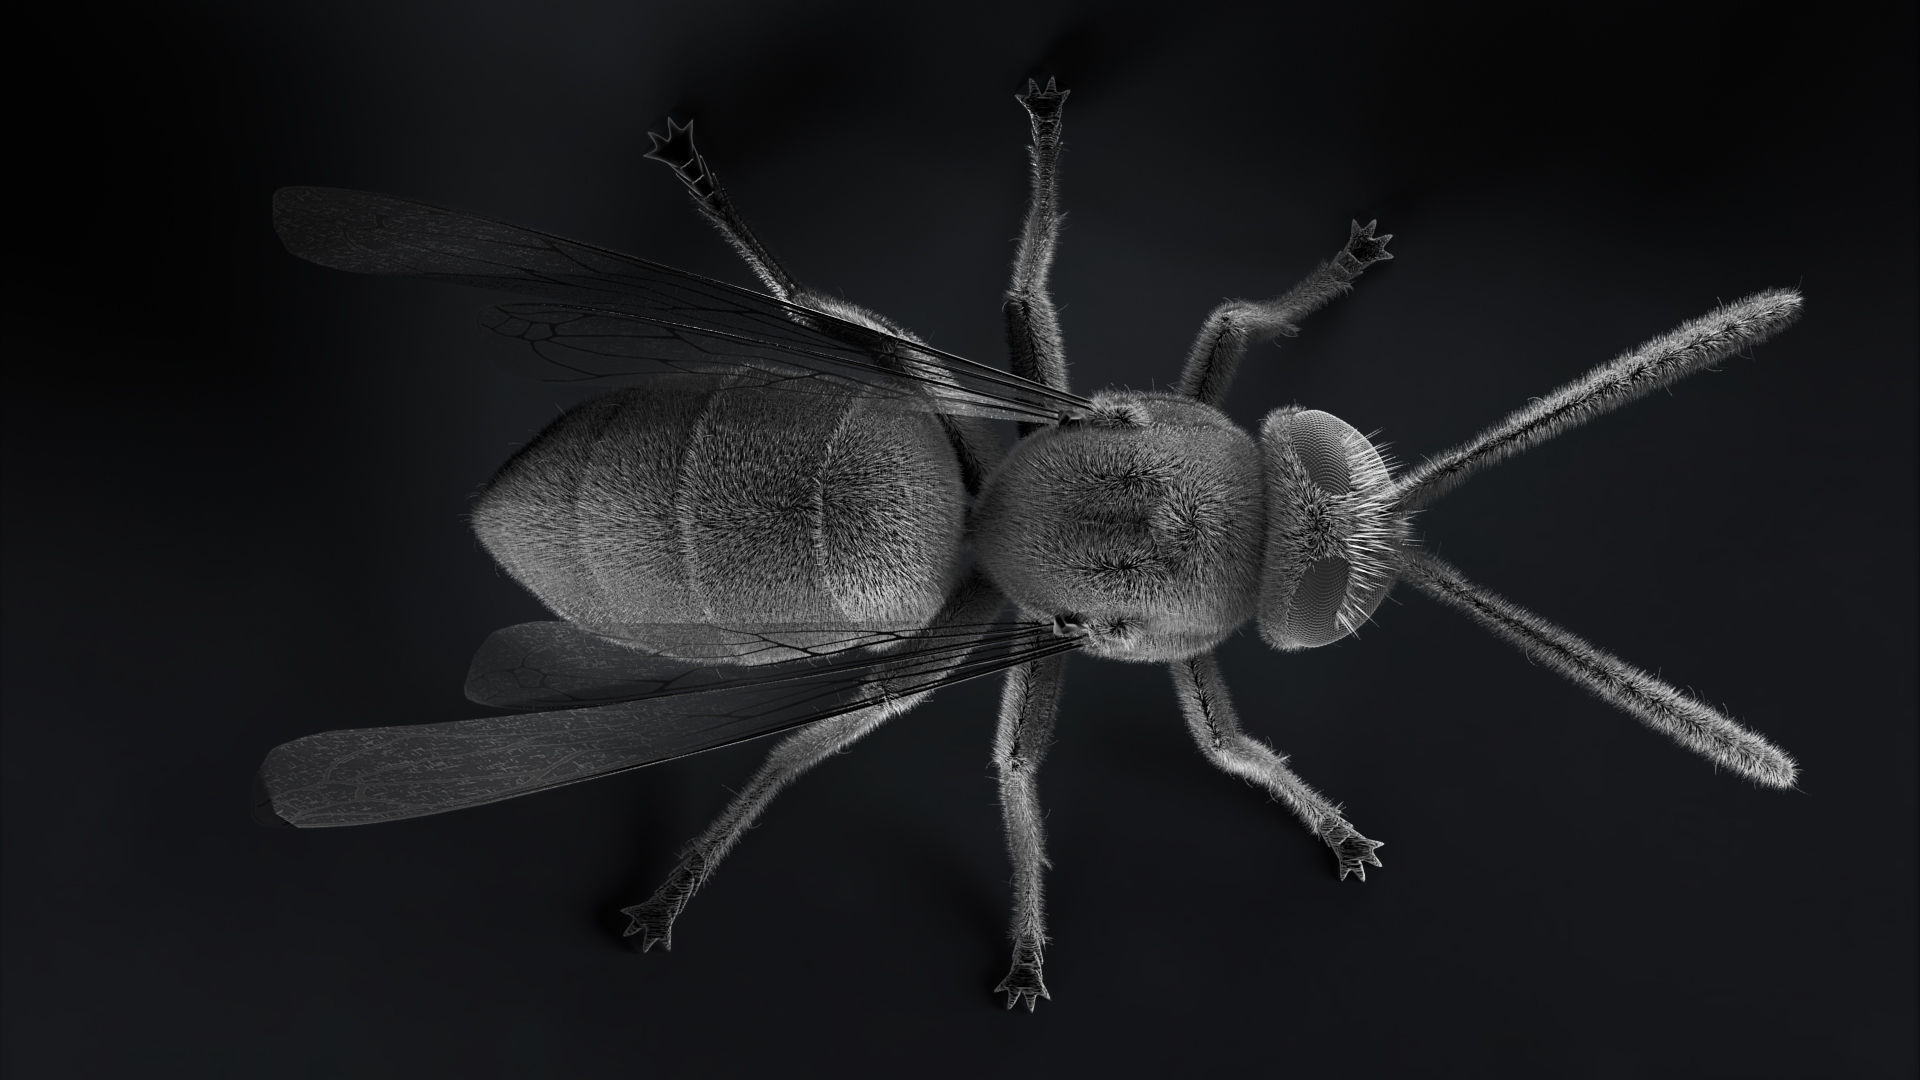 Wasp Micrography PBR VR